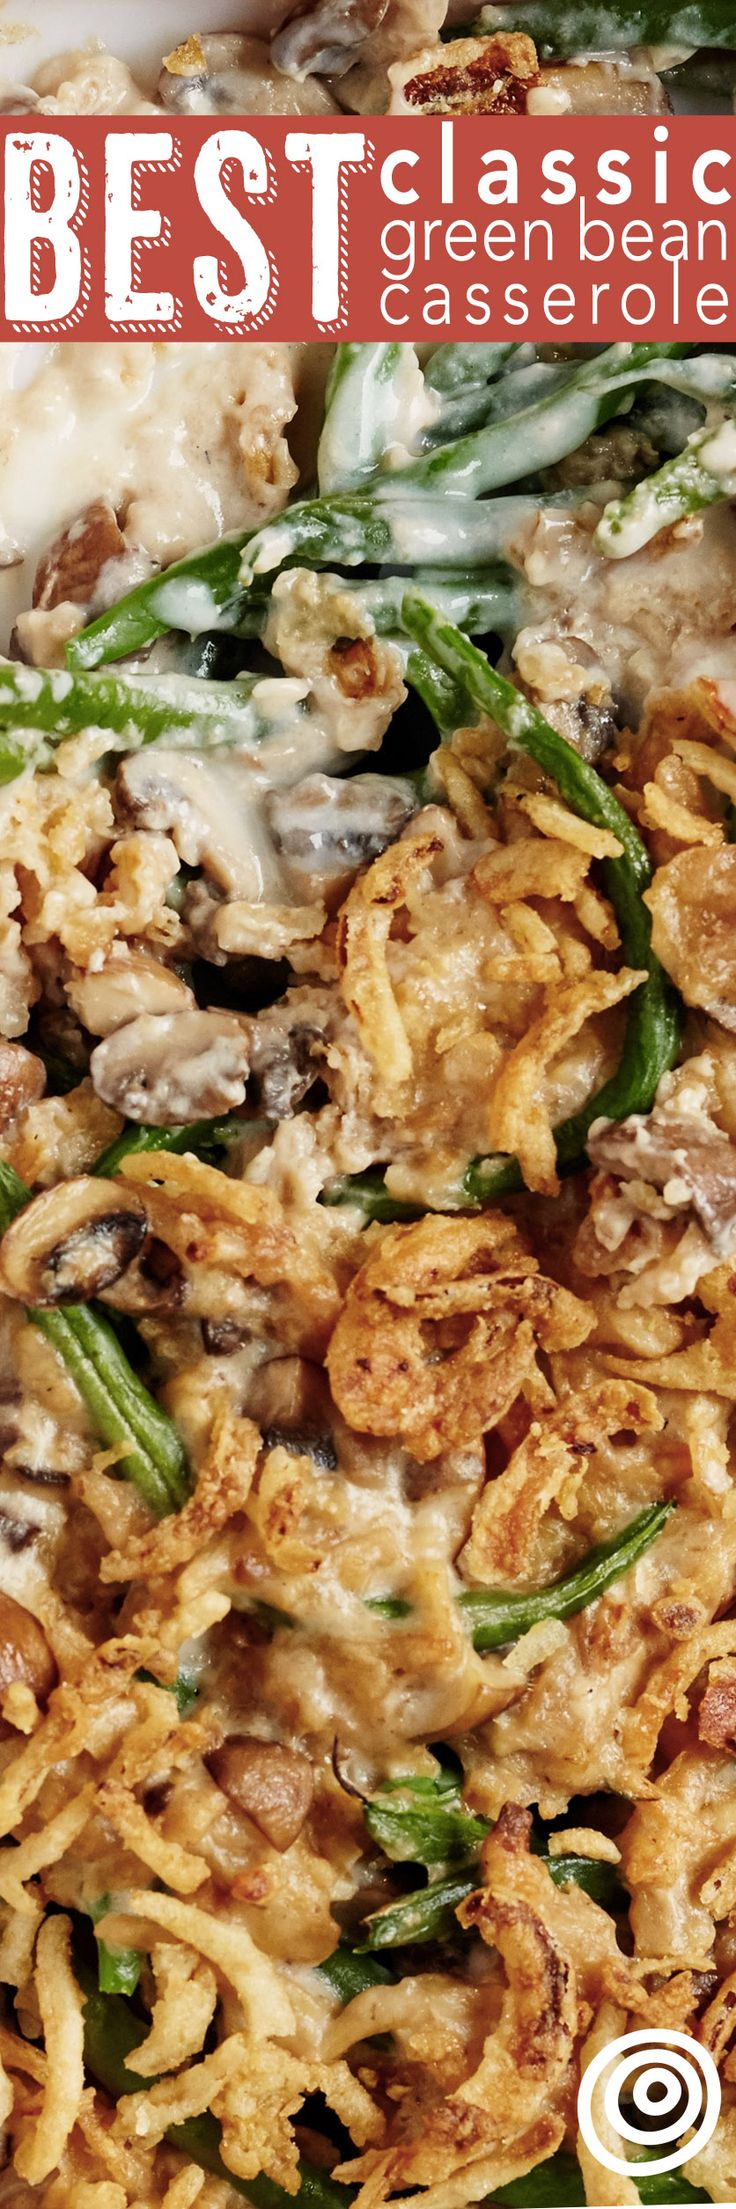 How To Make THE BEST Classic Green Bean Casserole Recipe from scratch. NO cans here, which makes it slightly more healthy. Perfect for Thanksgiving, and easy to make too! We like to use frozen green beans, lots of fresh mushrooms, and other tasty whole ingredients that your family will absolutely love.